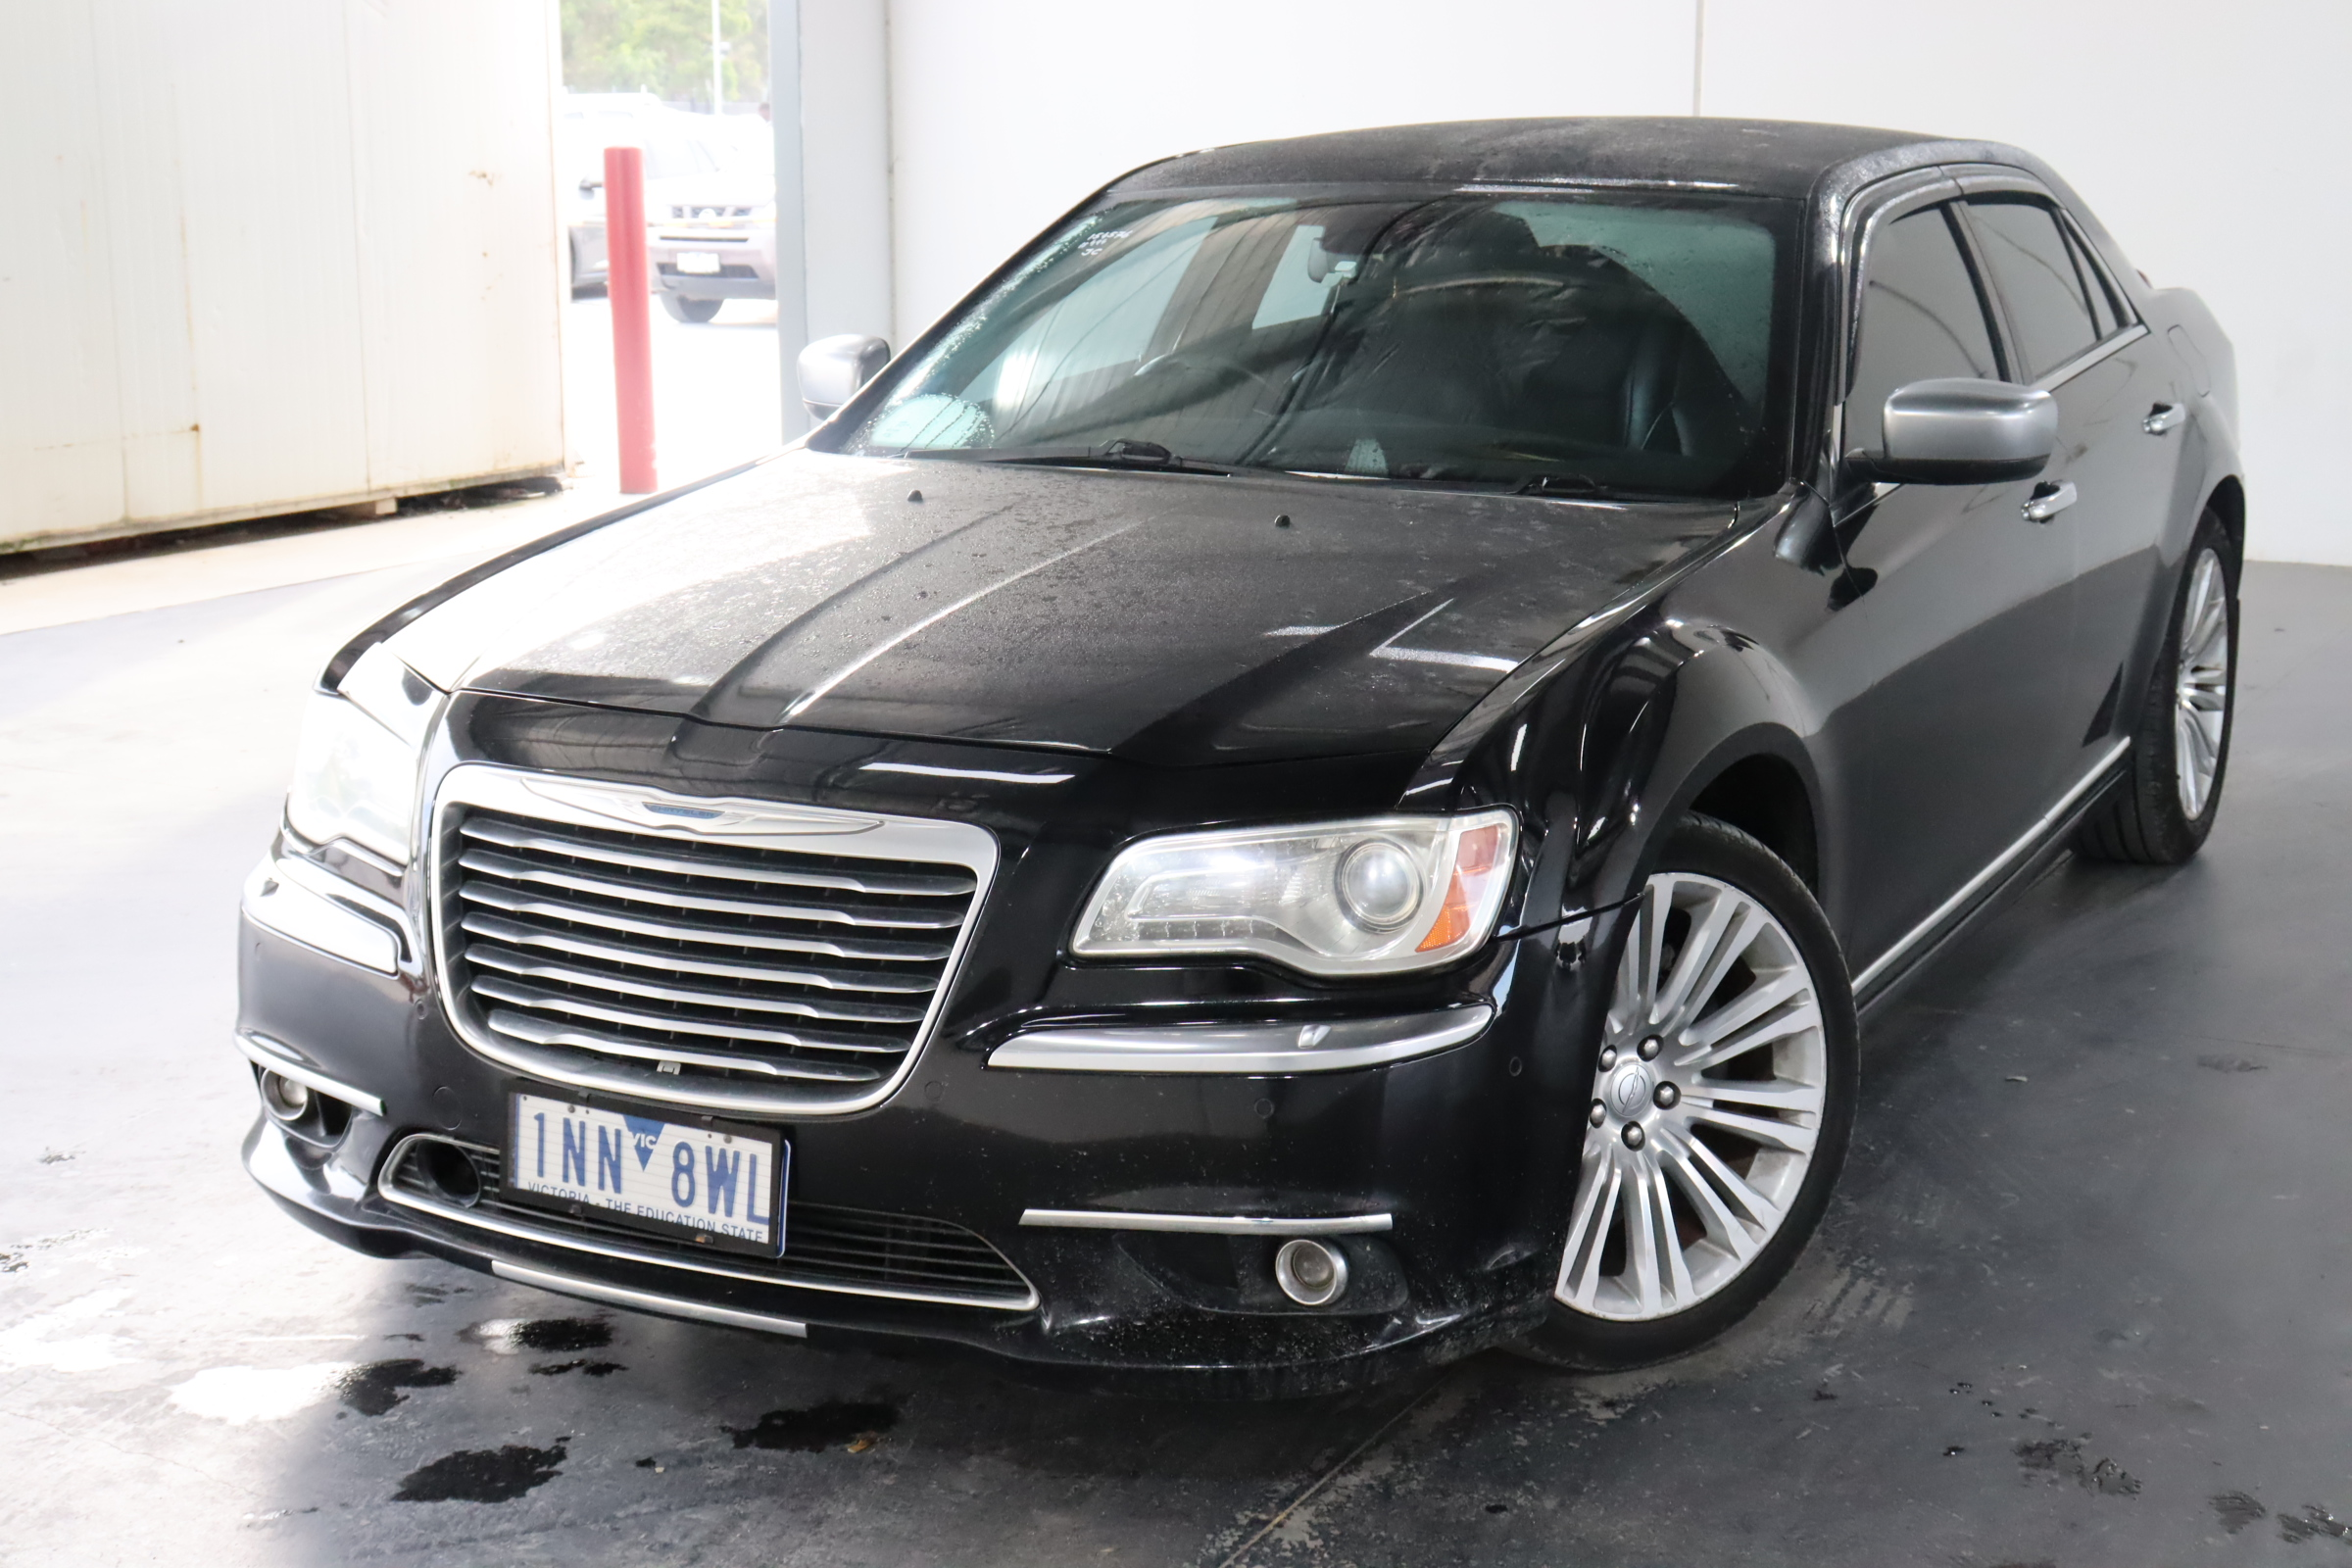 2013 Chrysler 300 C LUXURY LX Turbo Diesel Automatic Sedan